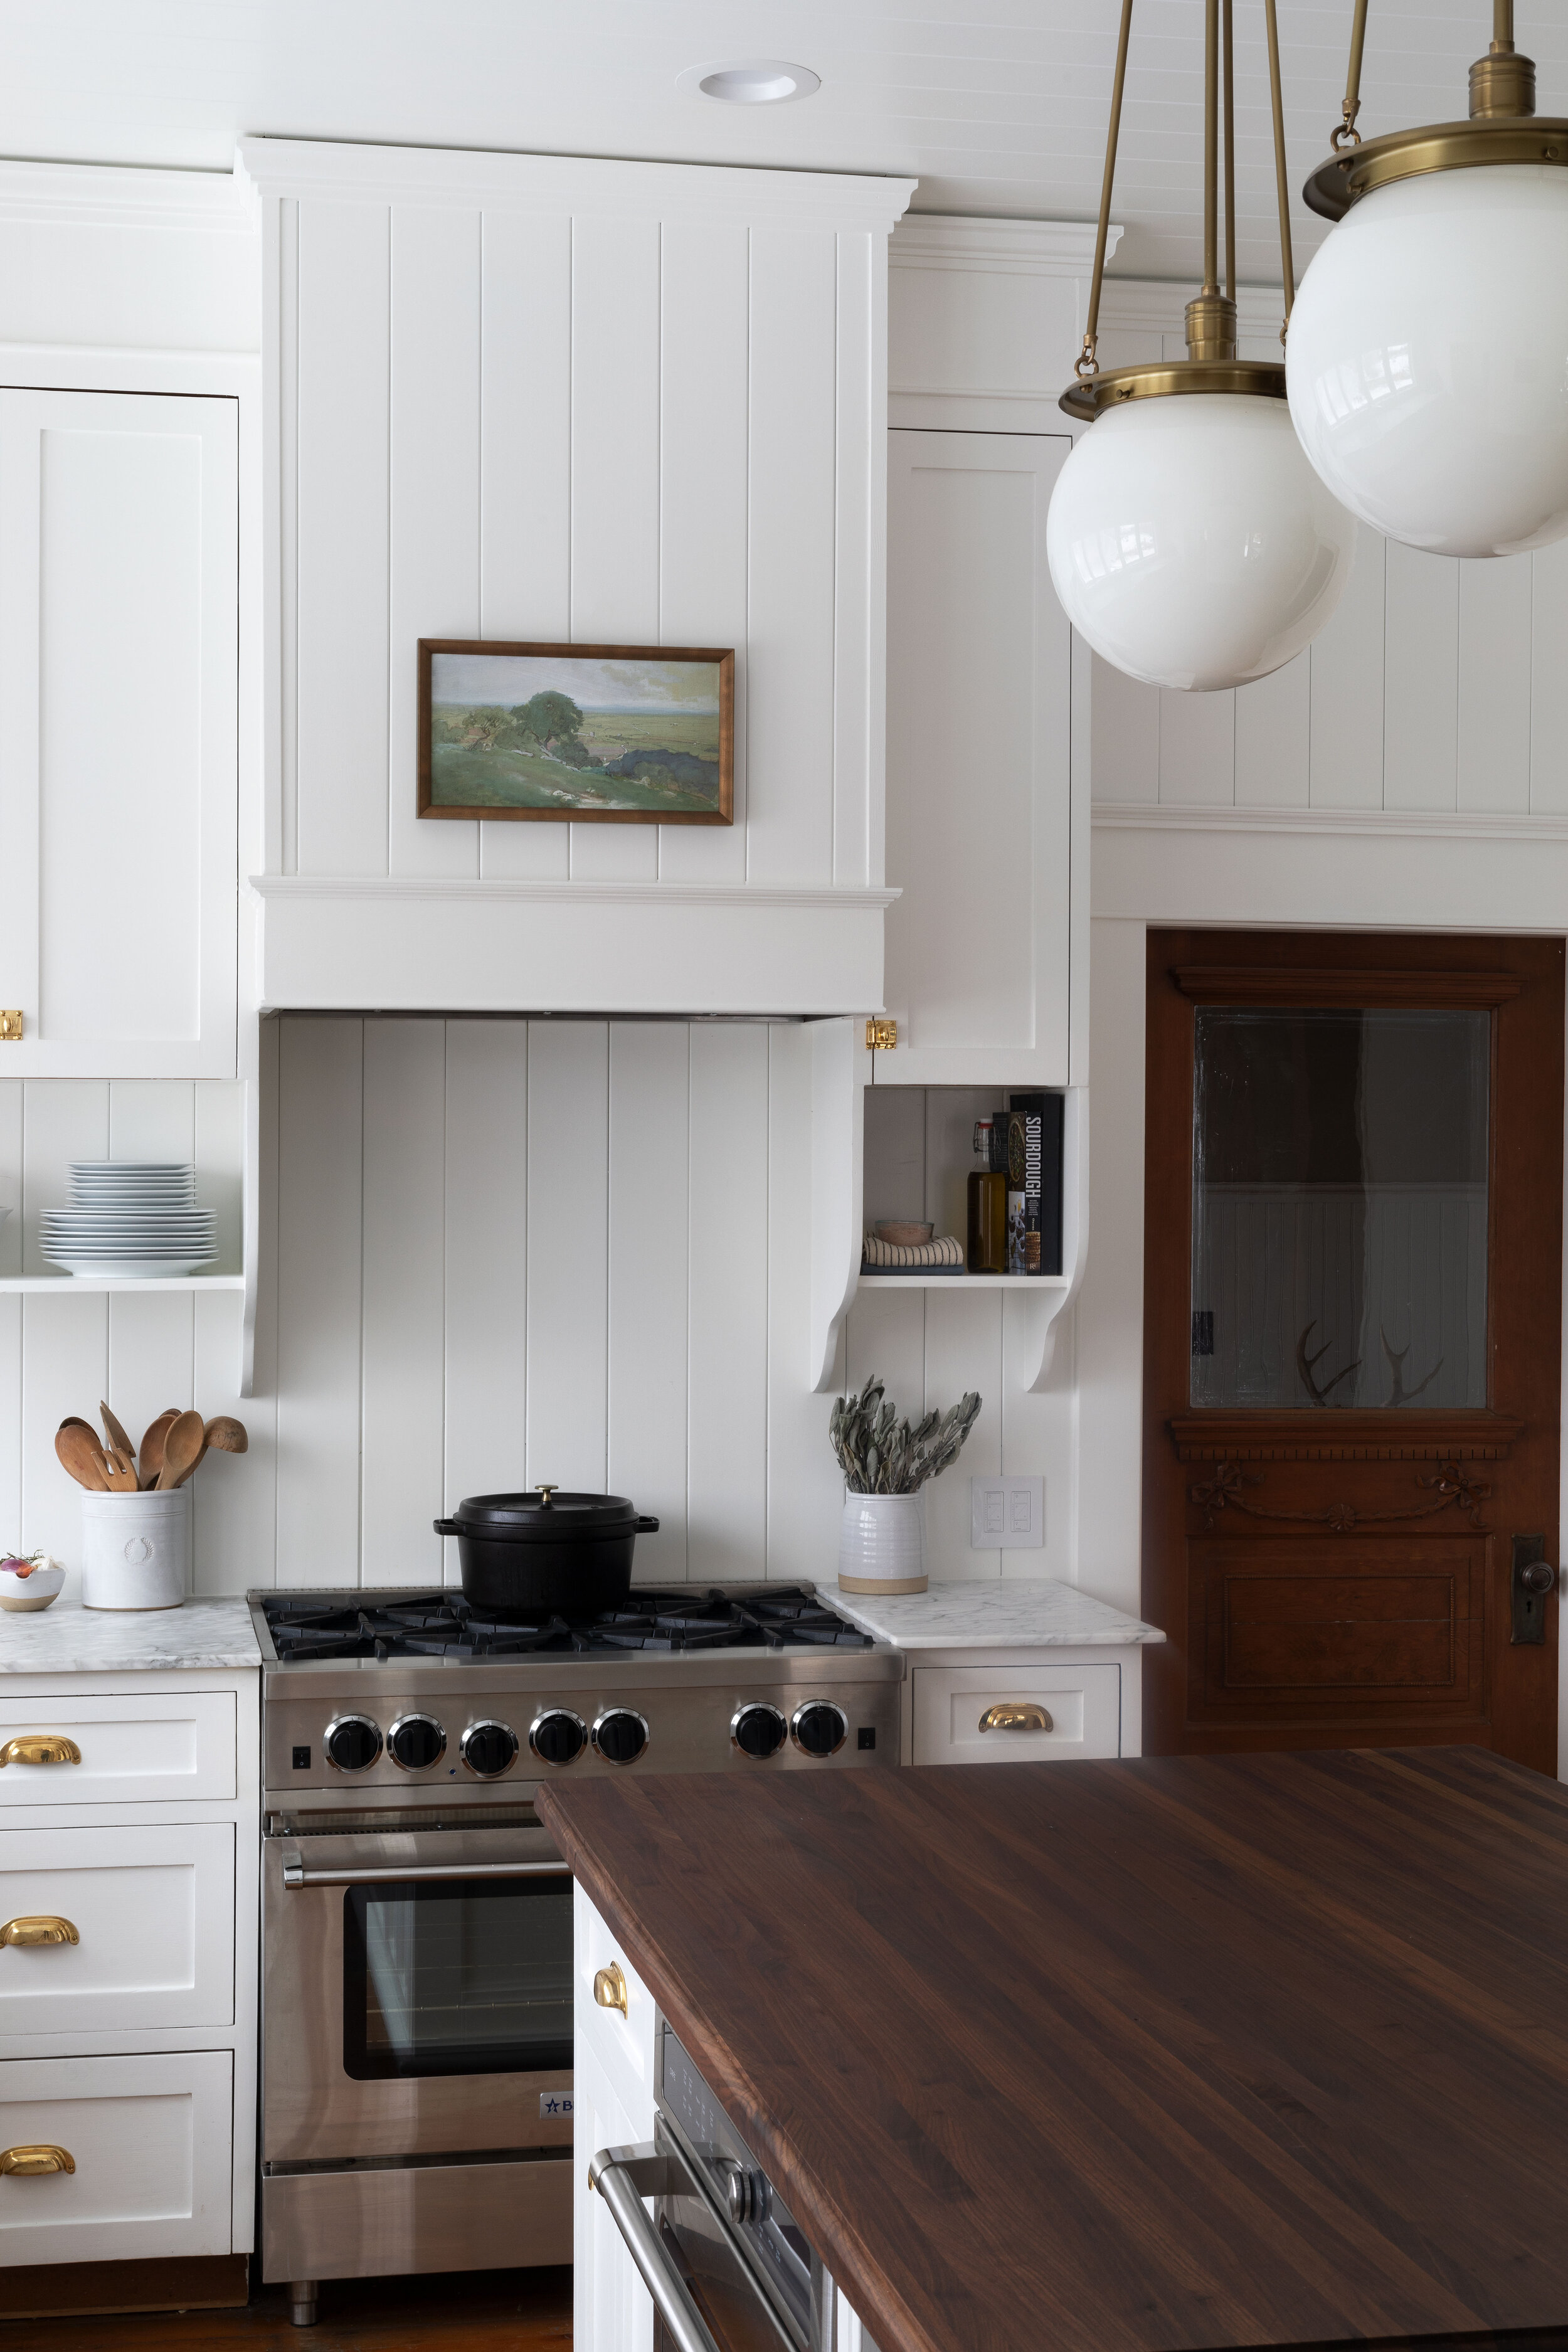 The Grit and Polish - Farmhouse Country Kitchen Reveal 3.0 20 web.jpg